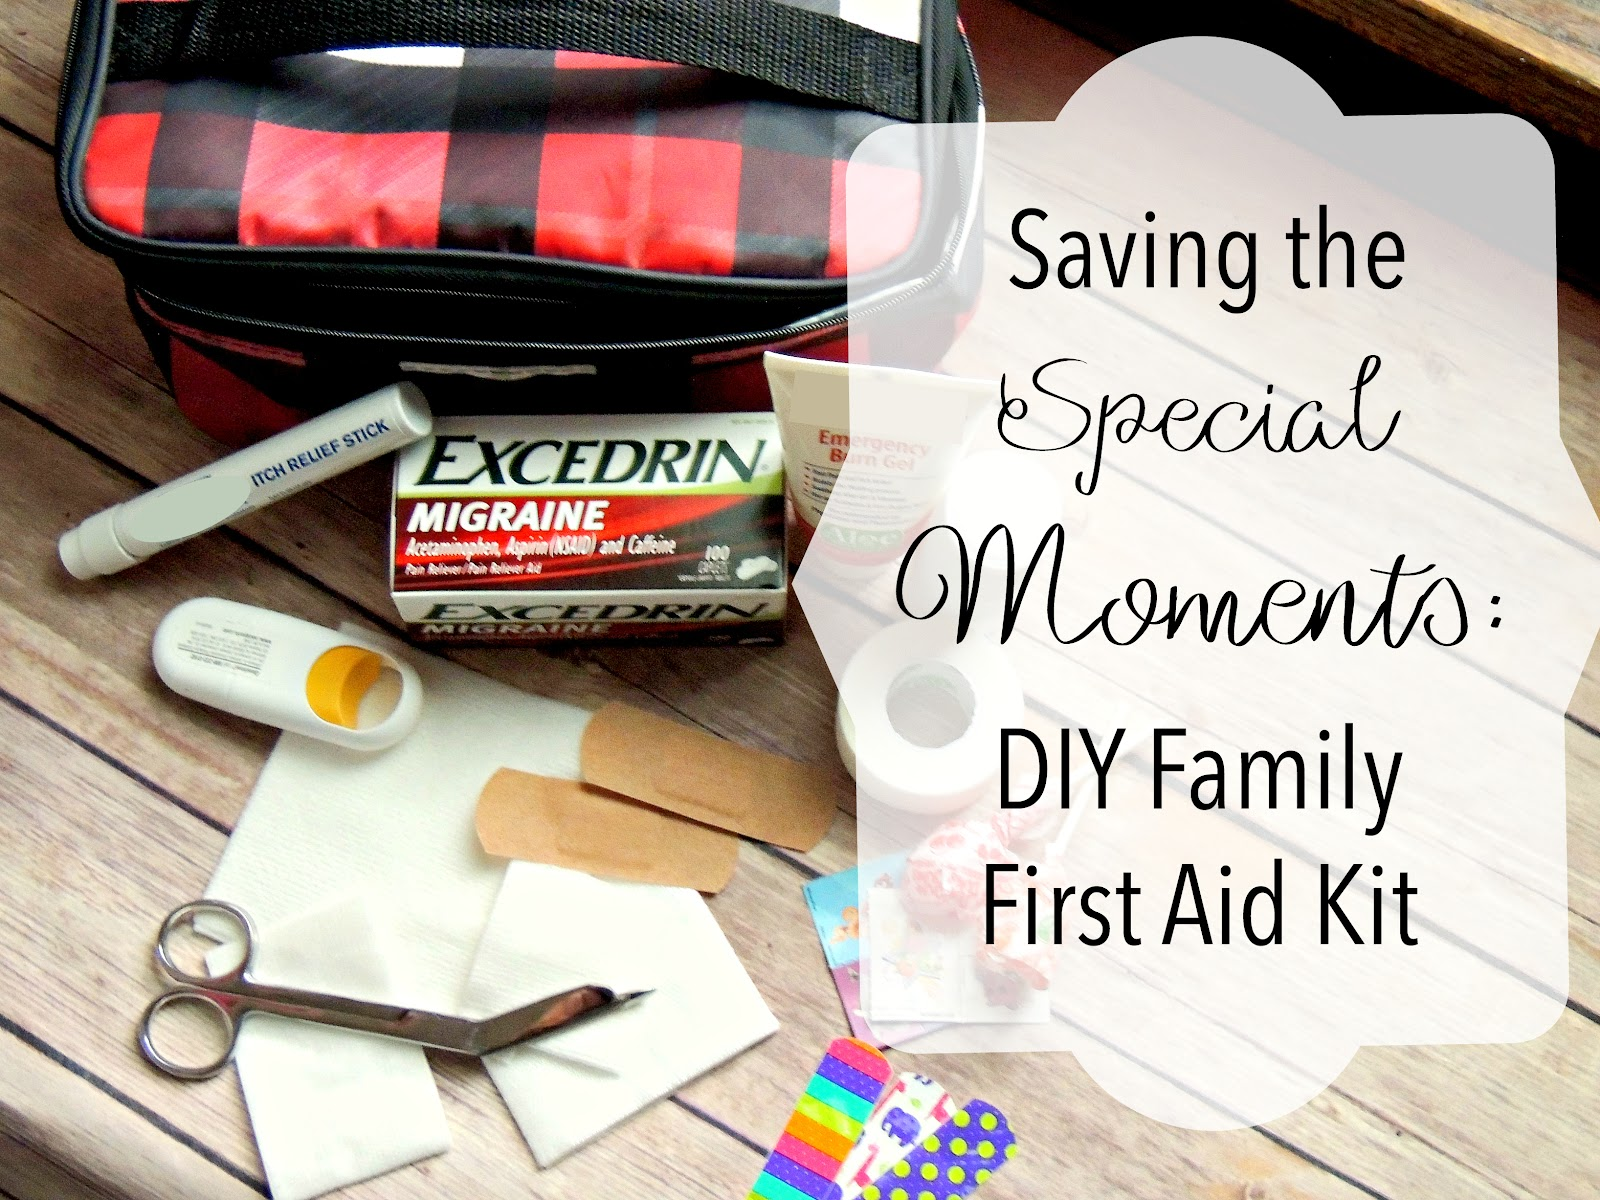 Saving the Special Moments DIY Family First Aid Kit Excedrin® Migraine First Aid Kit for the Family #MoreMomentsWithExcedrin #CollectiveBias #ad .jpg